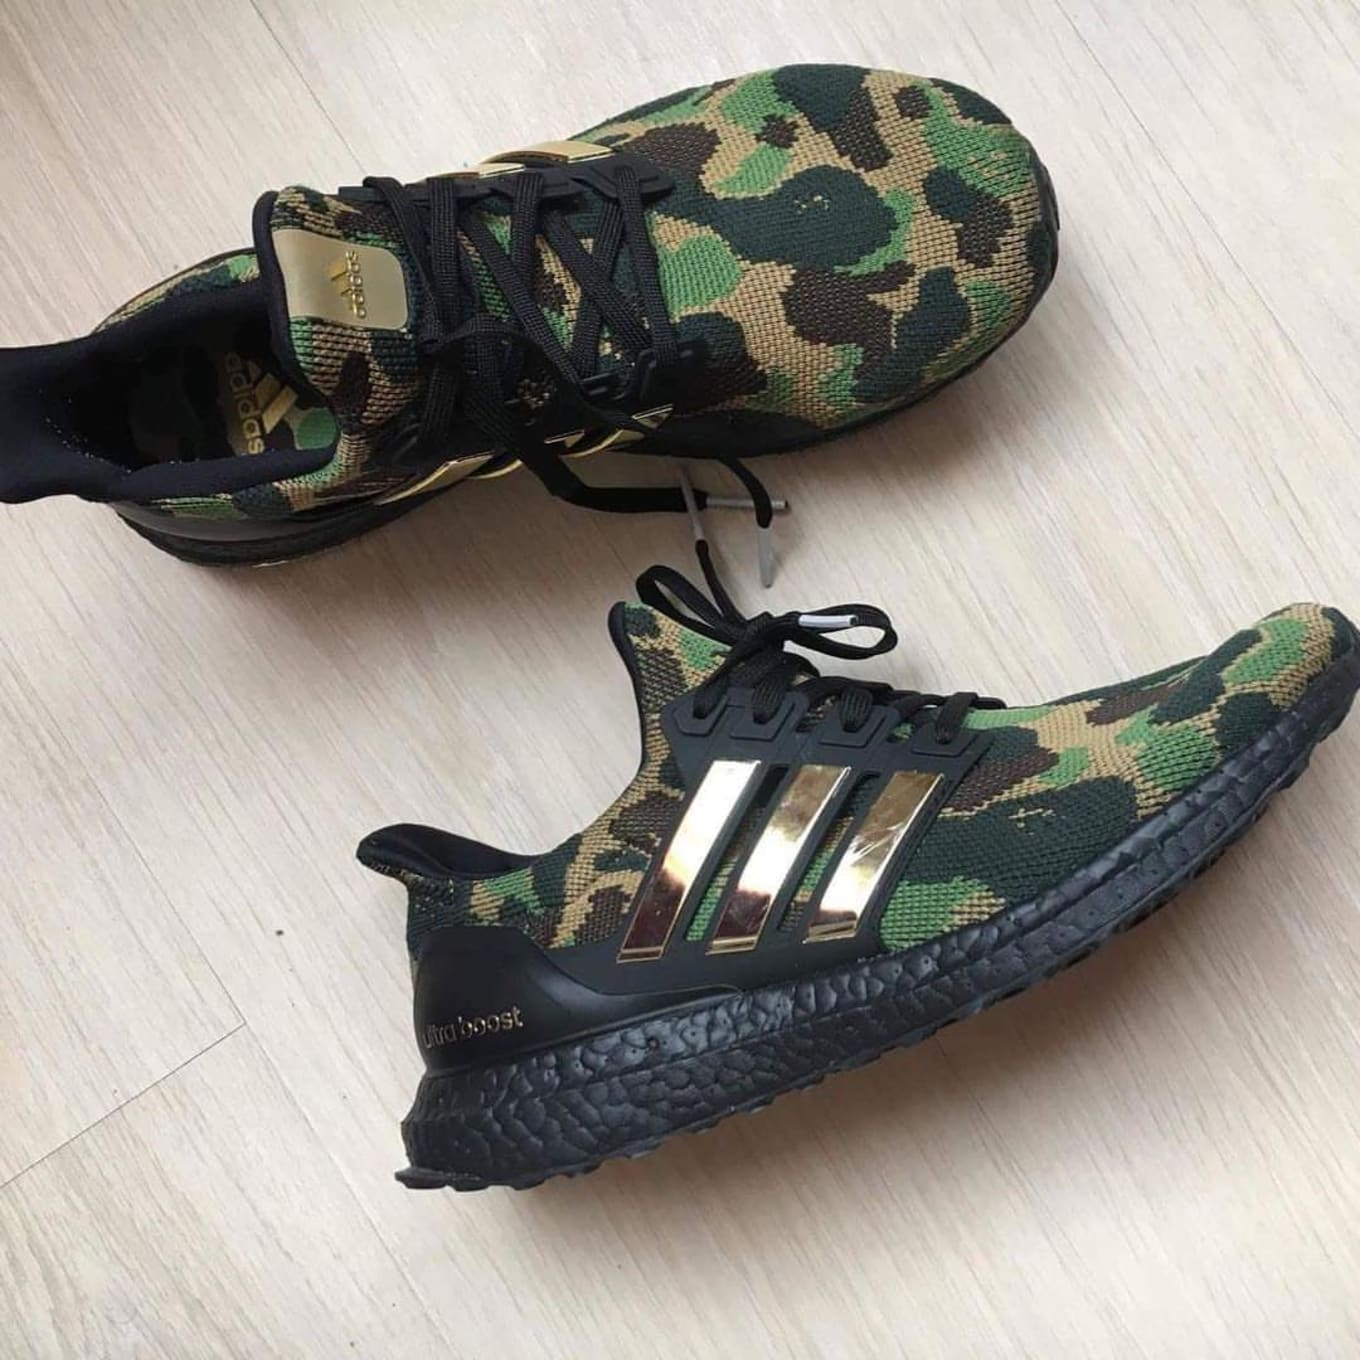 2c75005801c Bape x Adidas Ultra Boost Collaboration Release Date | Sole Collector